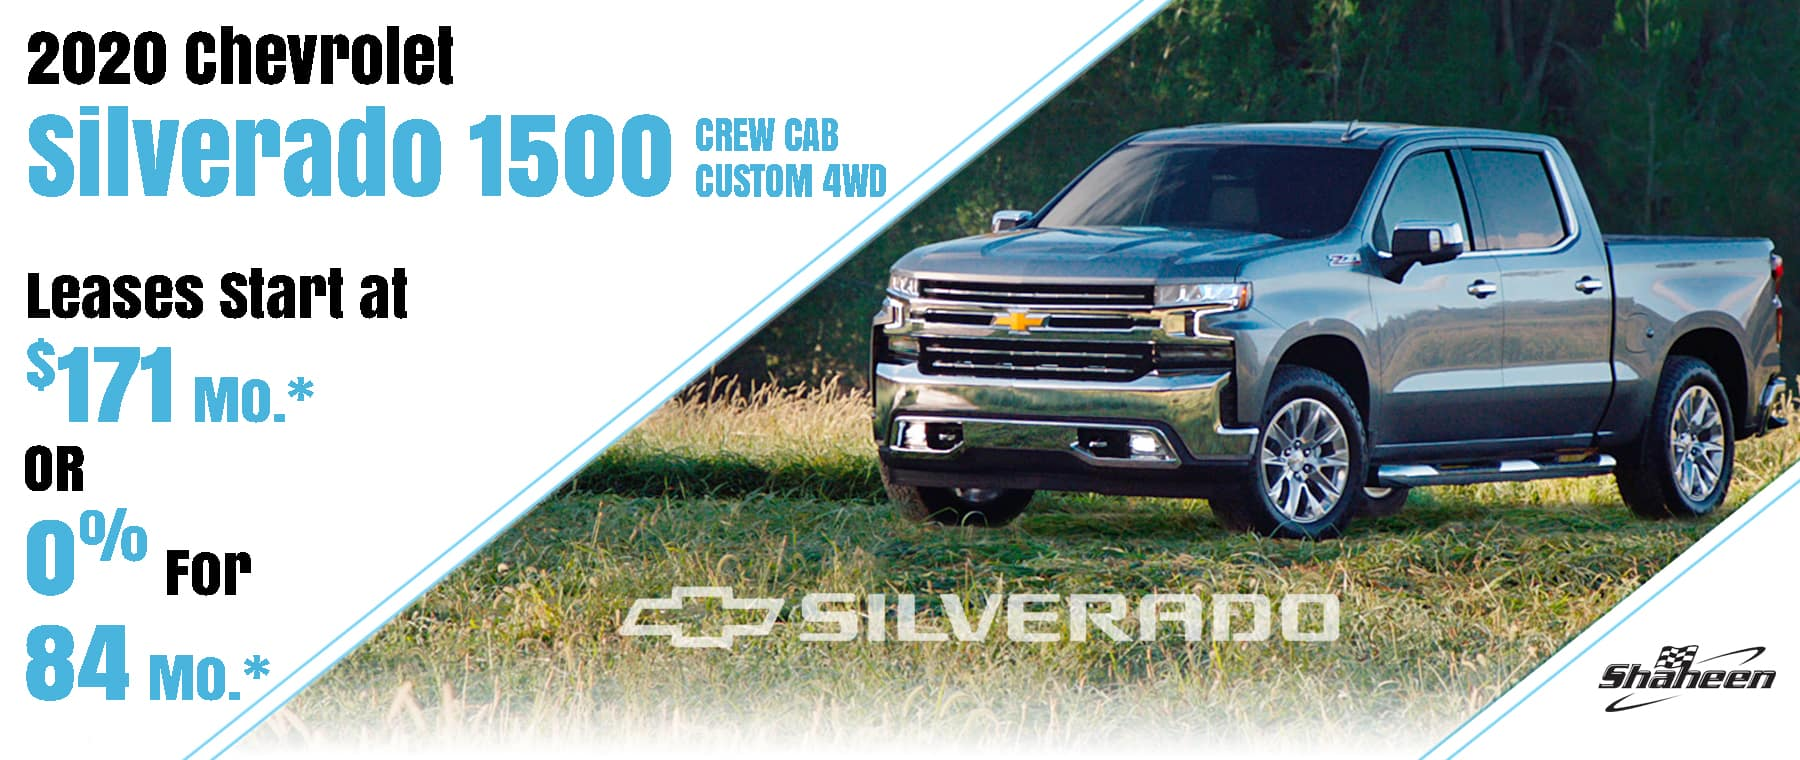 2020 Silverado Crew Cab Lease Offer